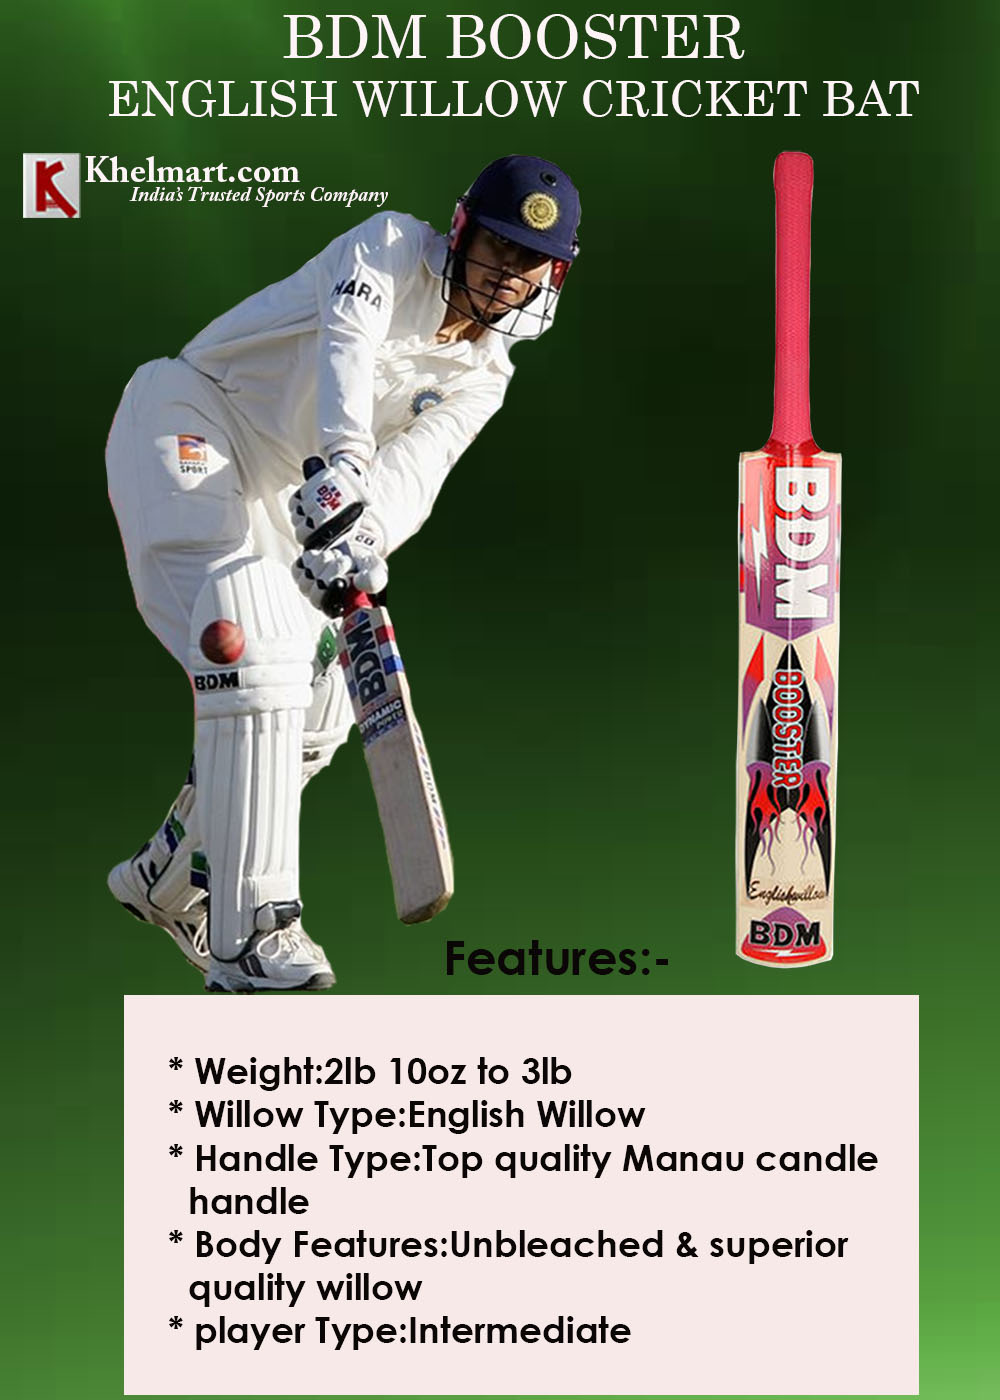 BDM Booster English Willow Cricket Bat